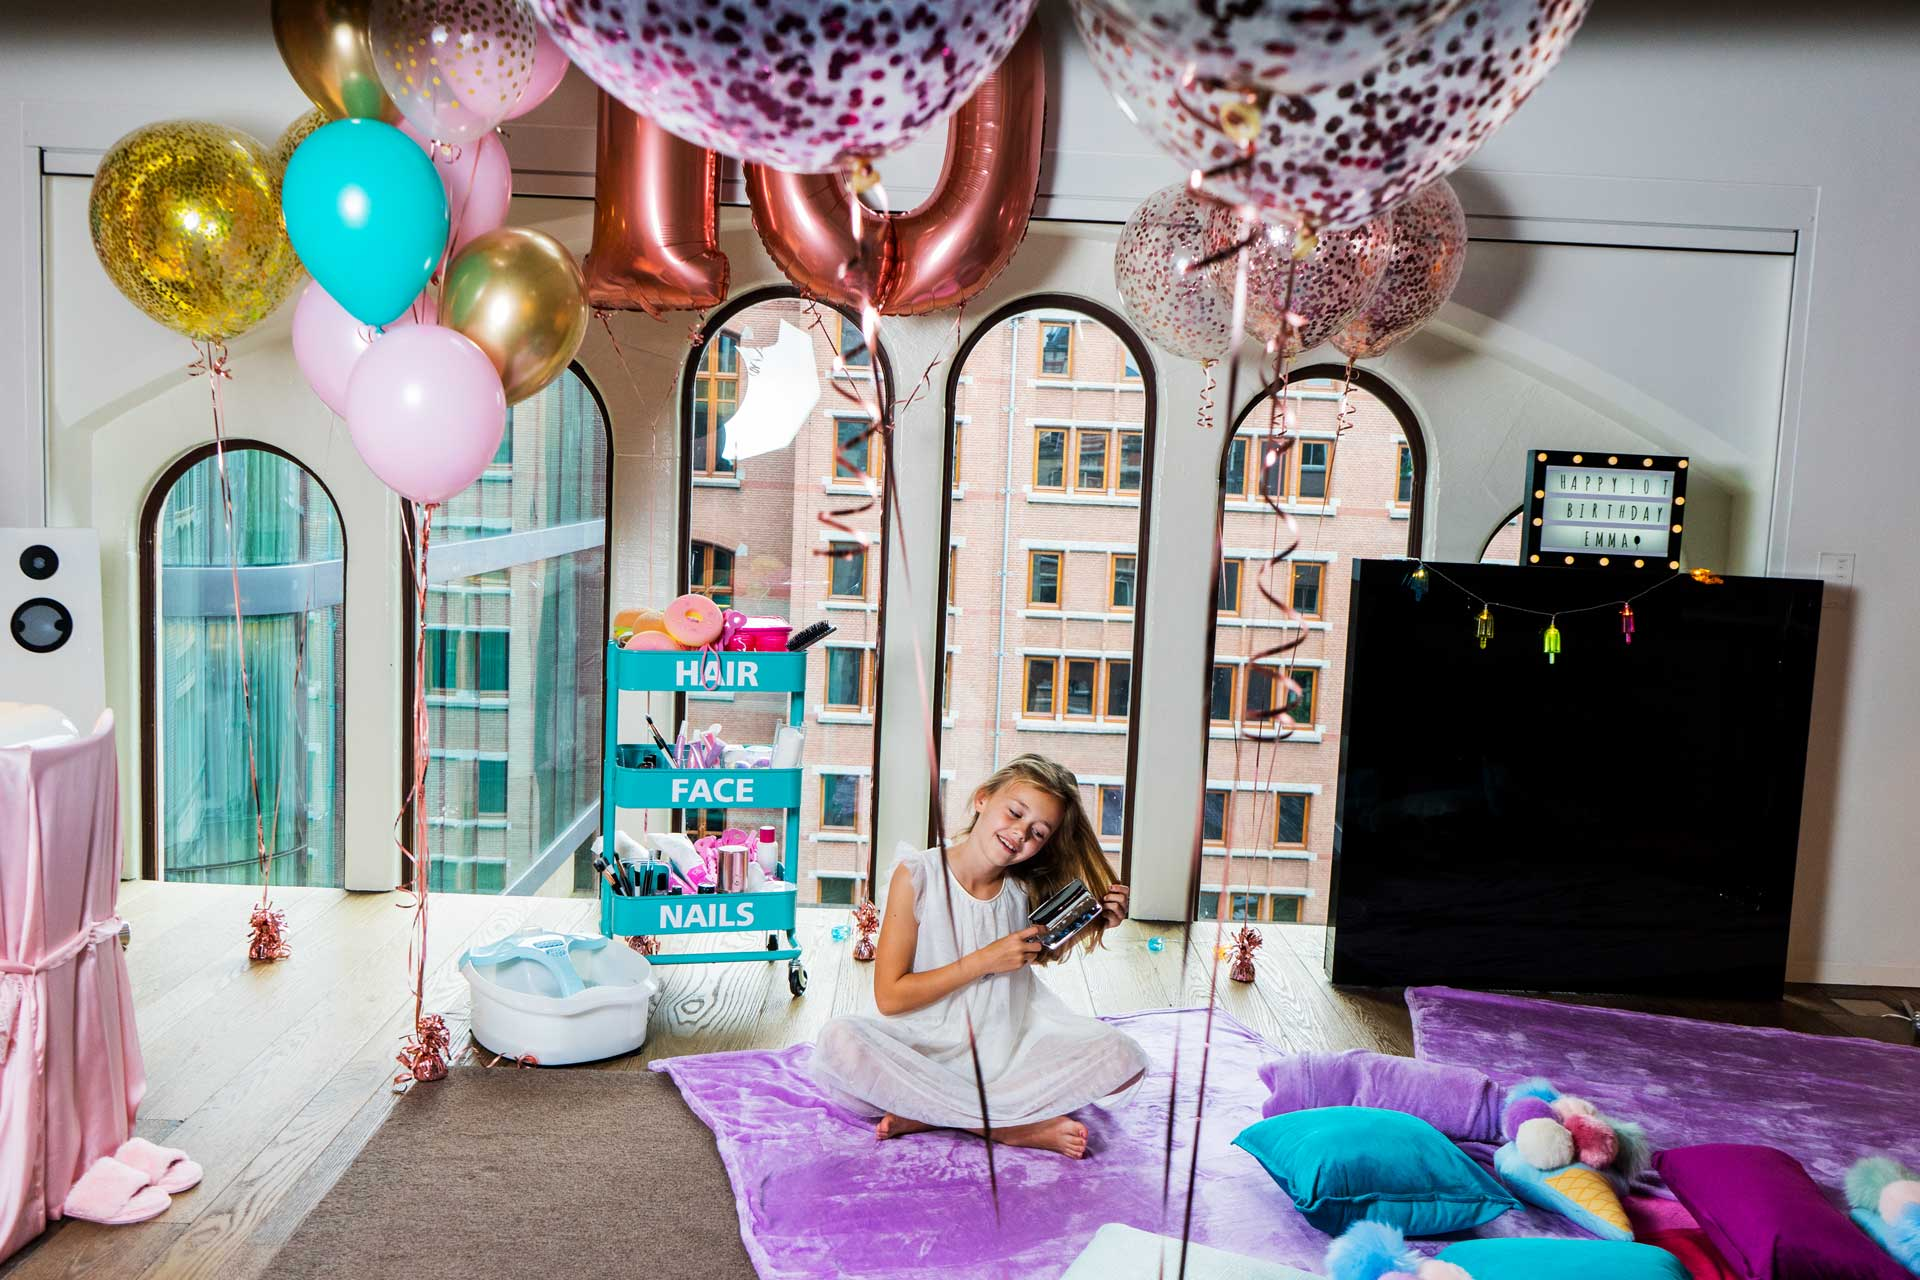 Sleepover Party in een luxe hotel!